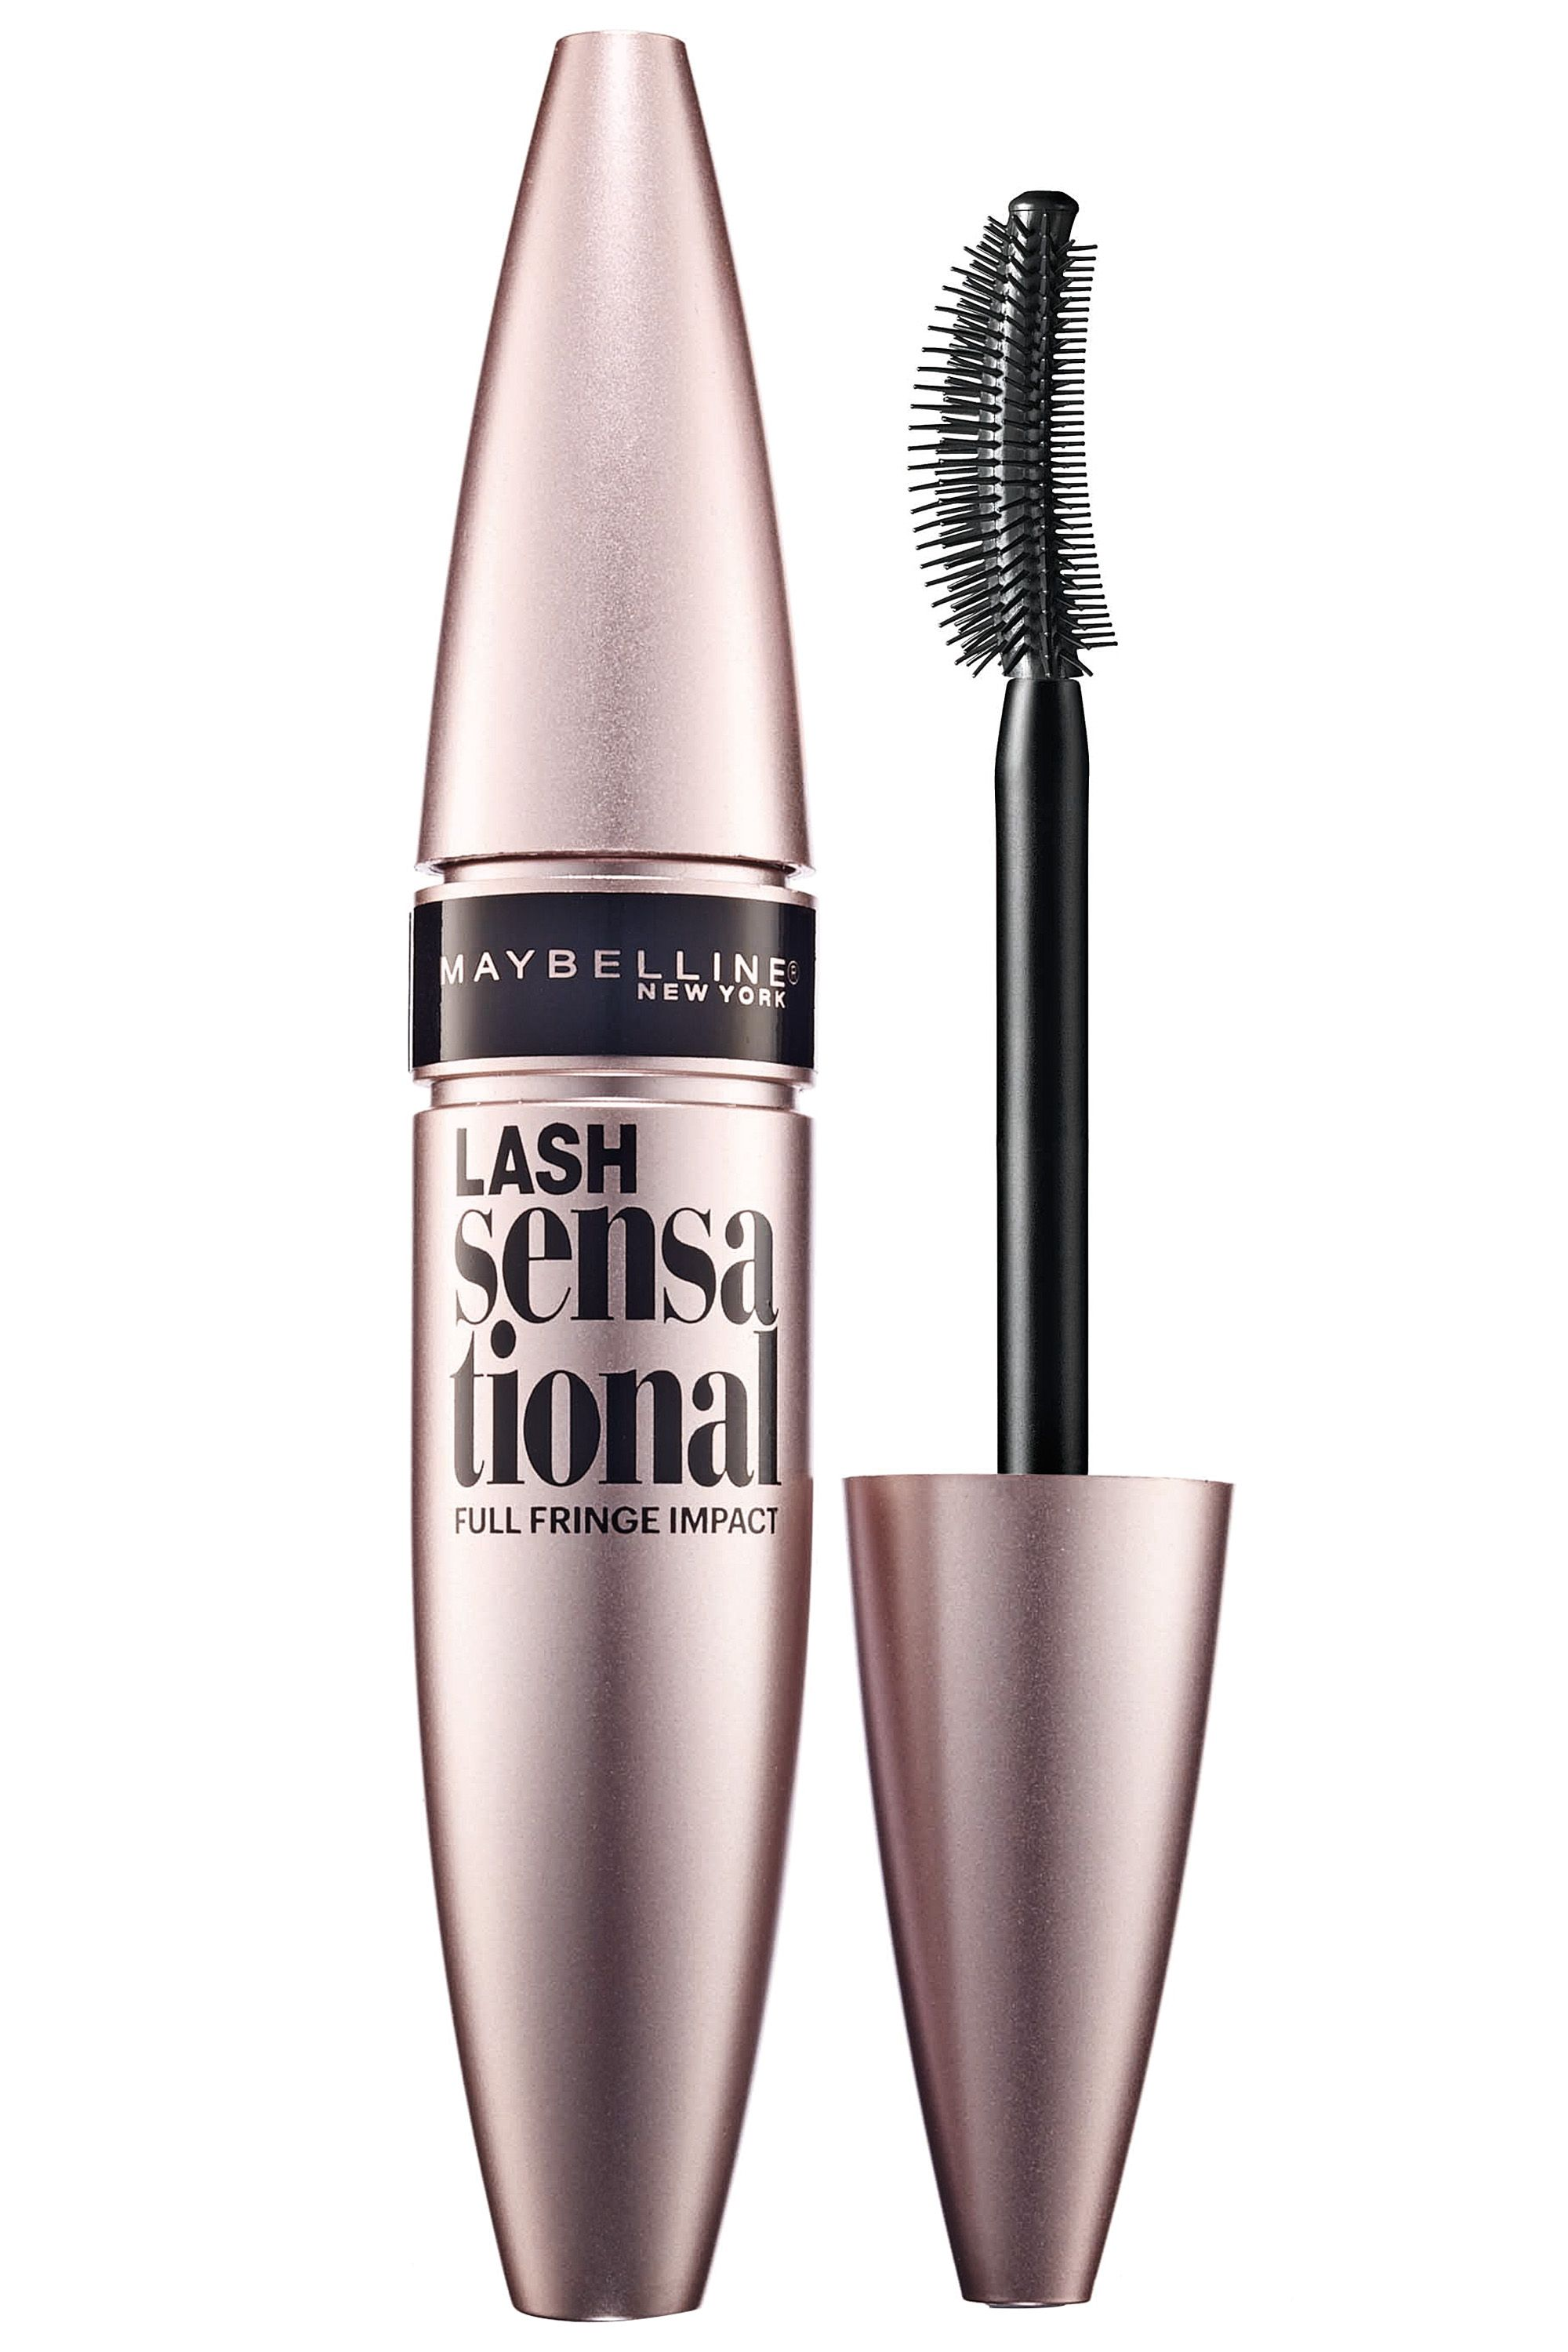 79d4431865f Maybelline New York Lash Sensational Mascara in Very Black, $8.99,  maybelline.com. - HarpersBAZAAR.com